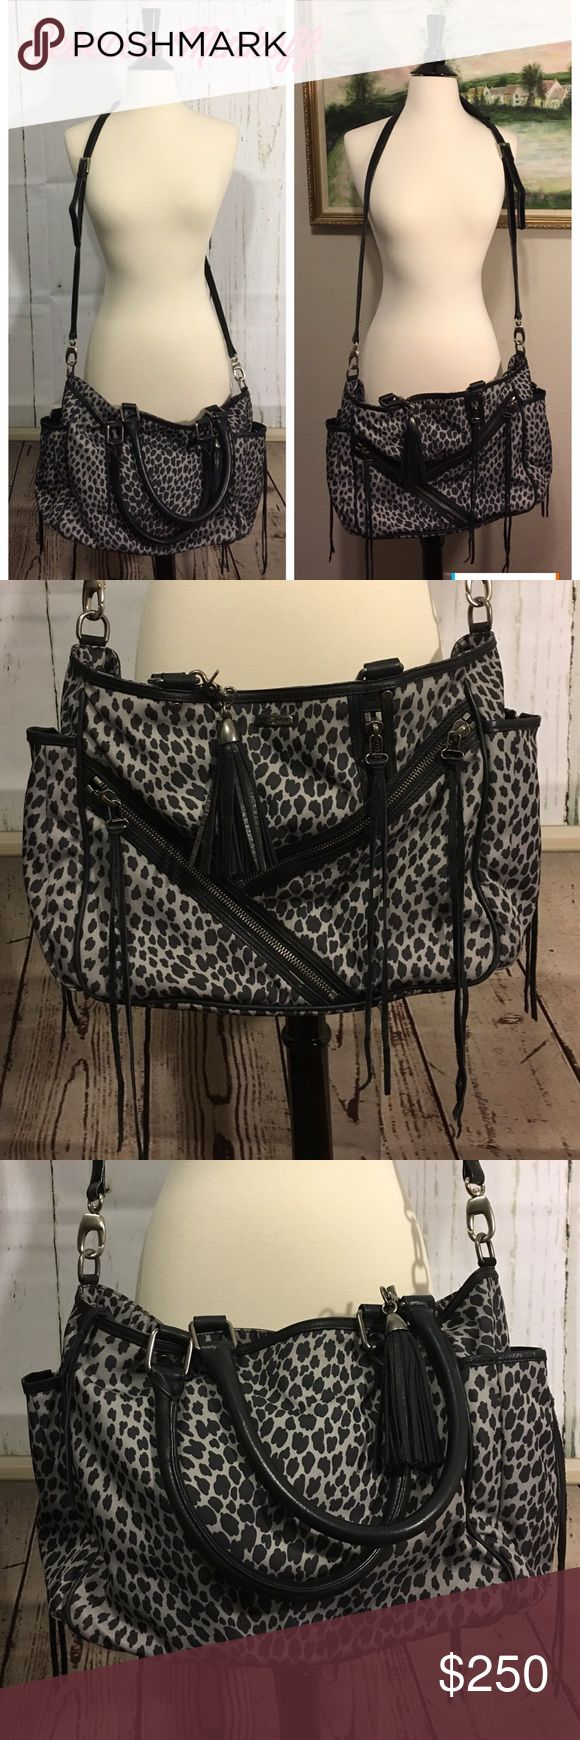 """🎀NWOT Rebecca Minkoff Crossbody🎀 Brand new, without tags, this Rebecca Minkoff  is 20"""" x 11"""" laying flat and 7 1/4@ wide. 2 large side pockets that zip to expand with the black and white material on the inside, and a leather tassel on each zipper. Shoulder straps measure approximately 19"""" and the removable cross body strap has padding with silver hardware and is adjustable, measuring 48"""" with another 4"""" extension. The front of bag has zig zag zippered pouches, each w/a leather tassel…"""